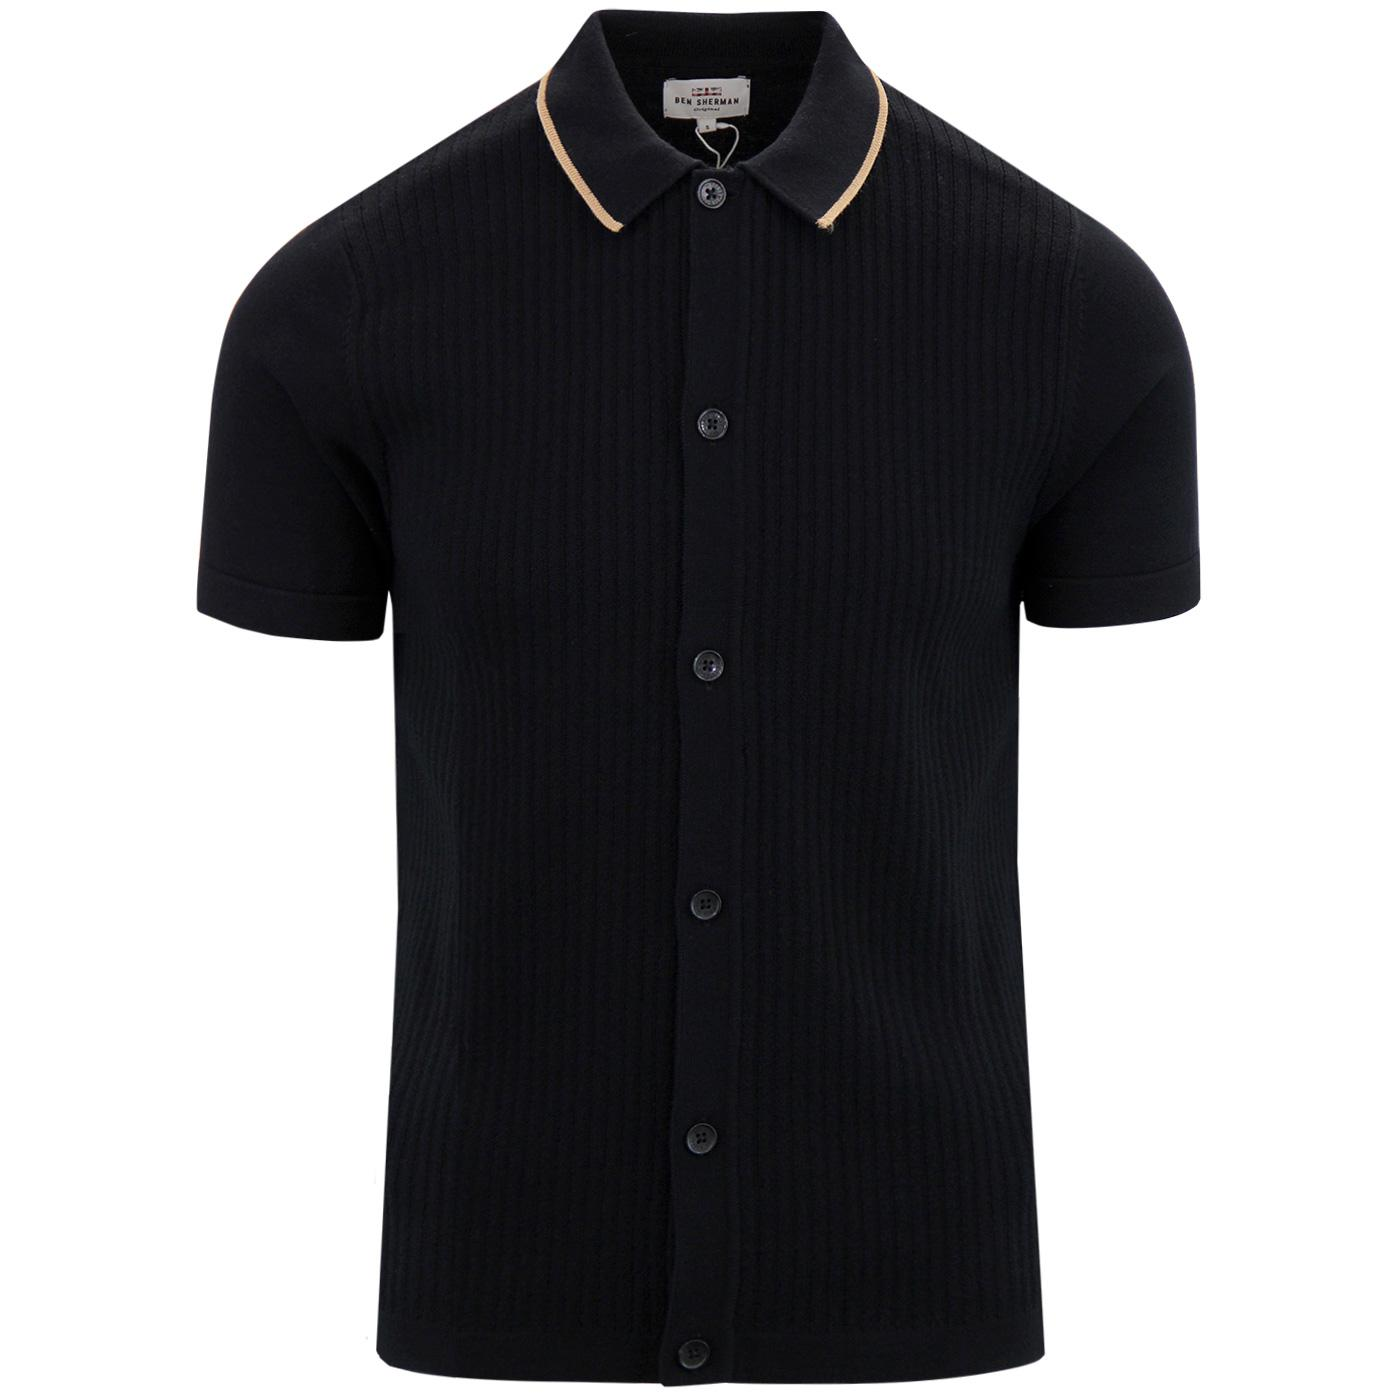 BEN SHERMAN 60's Mod Ribbed Button Up Polo Top (B)